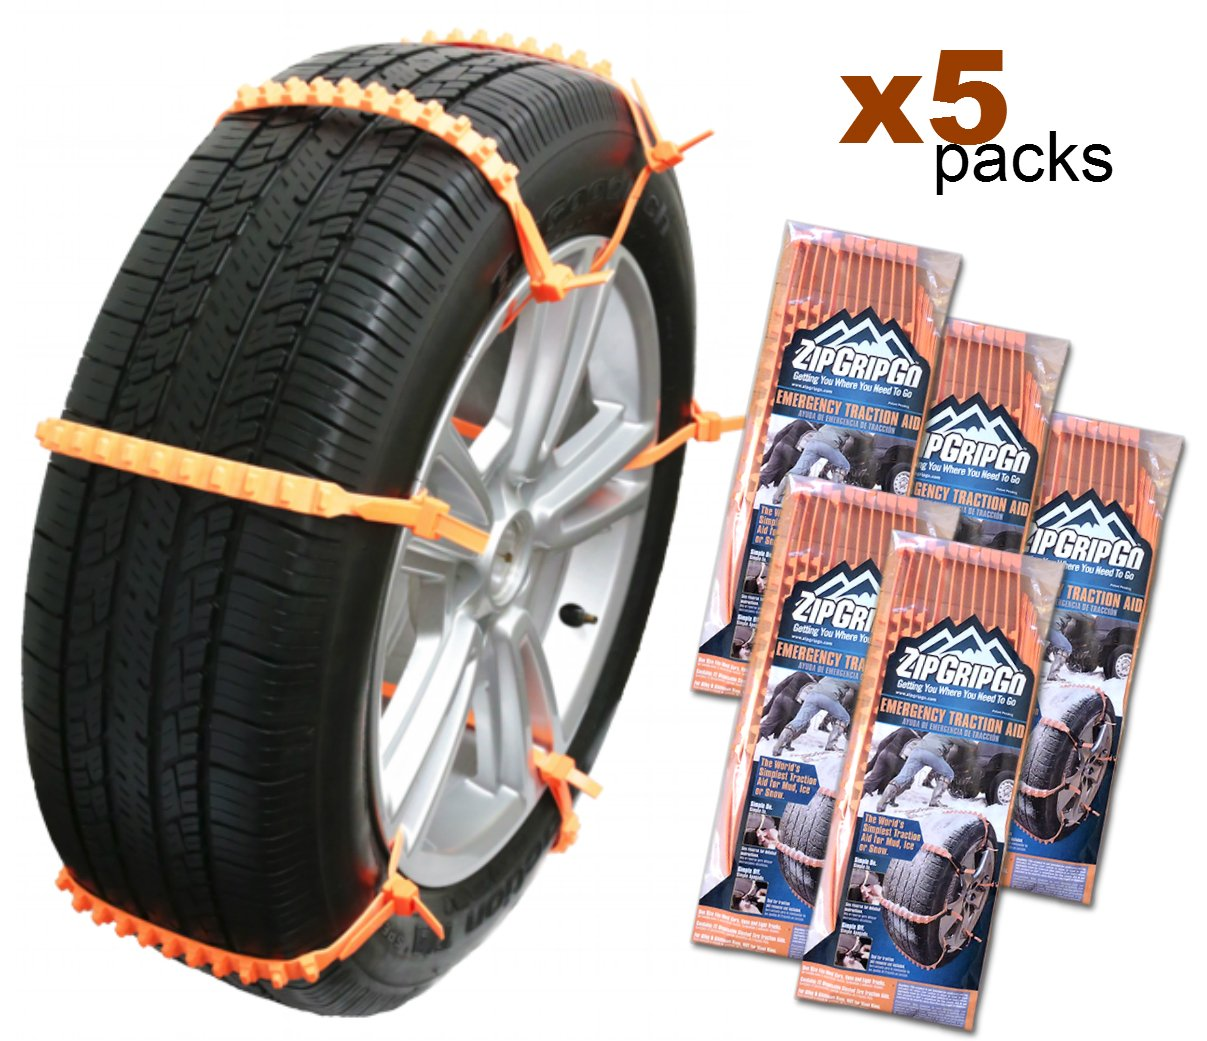 Zip Grip Go - Cleated Tire Traction Aid for Snow, Ice & Mud - Emergency Winter Snow Chain Alternative Car Truck Van SUV - Bulk 50 Pack